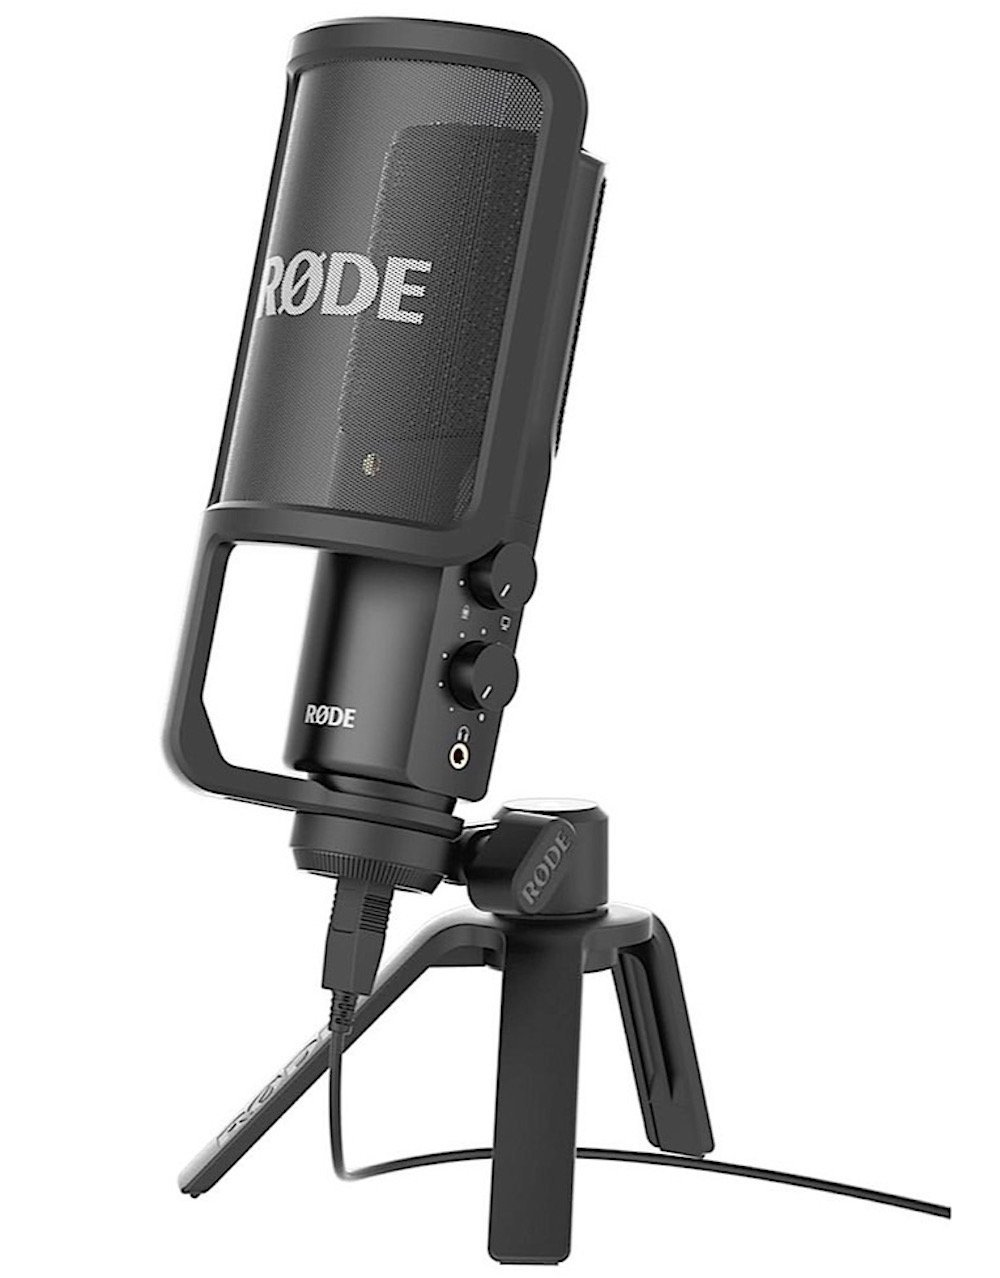 Best Budget Microphones - Get a Top 20 Podcast Microphone for Under $200 - Rode NT-USB Condenser Microphone